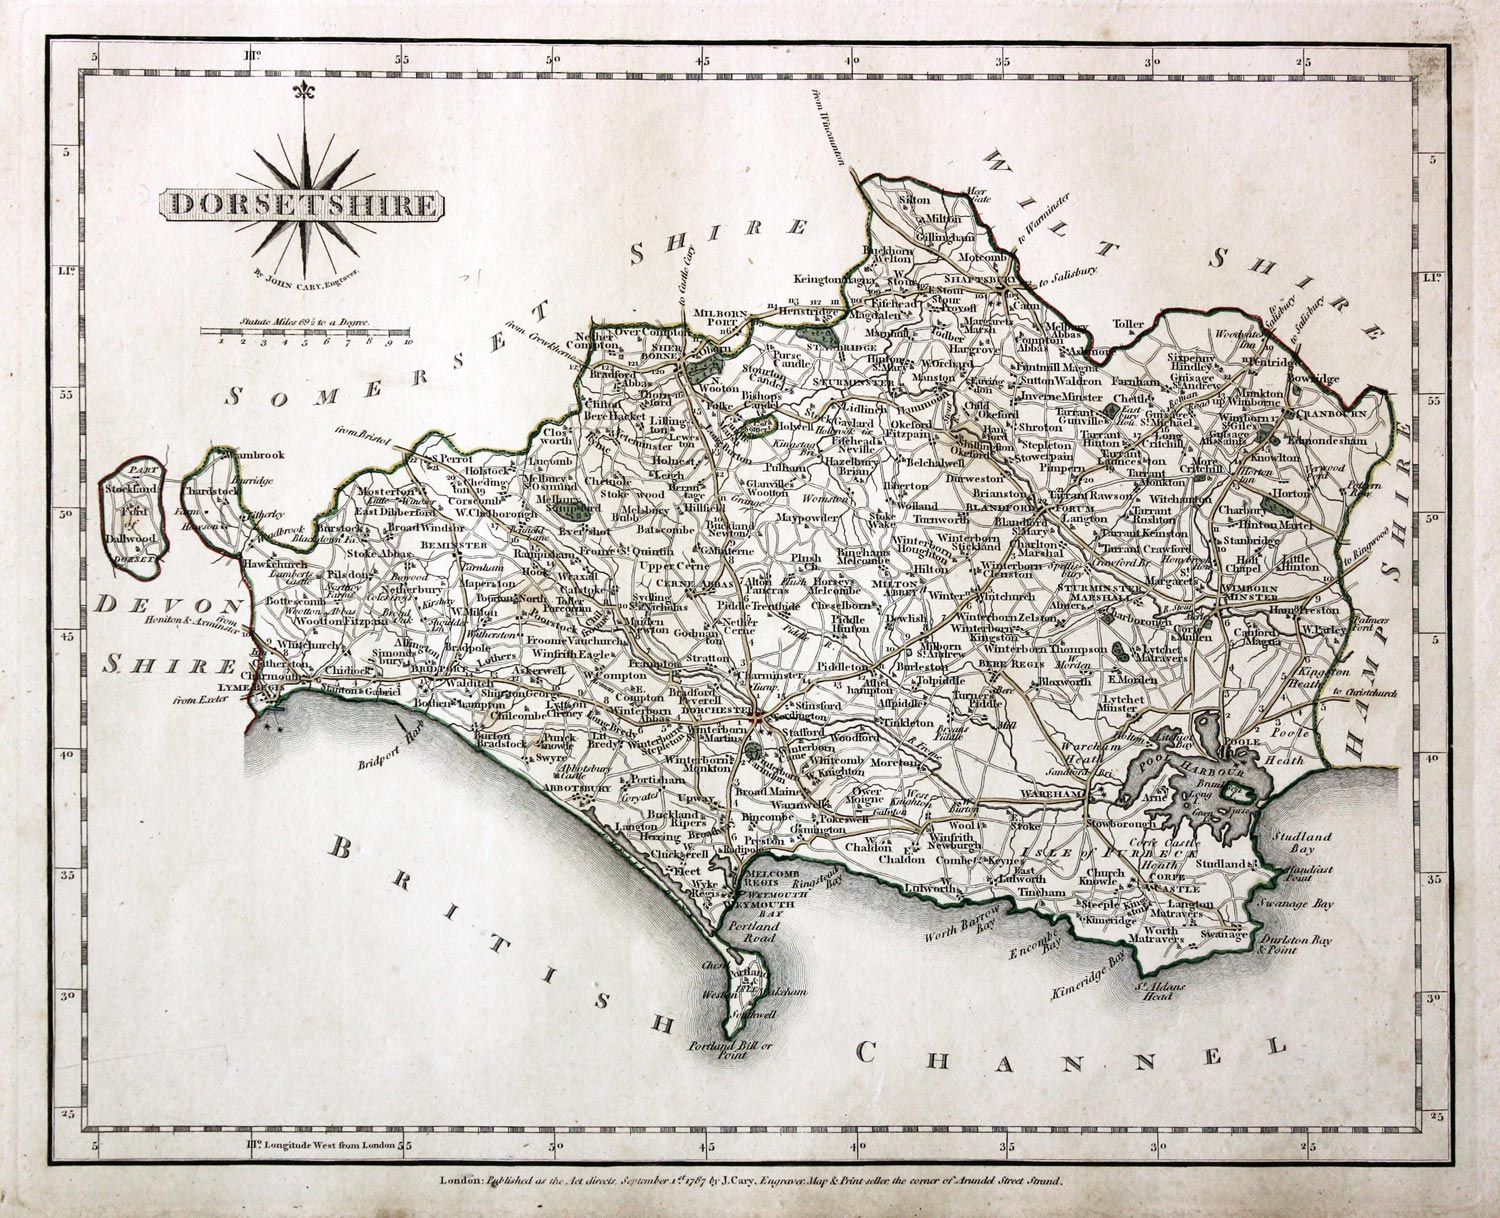 John Cary map of Dorsetshire